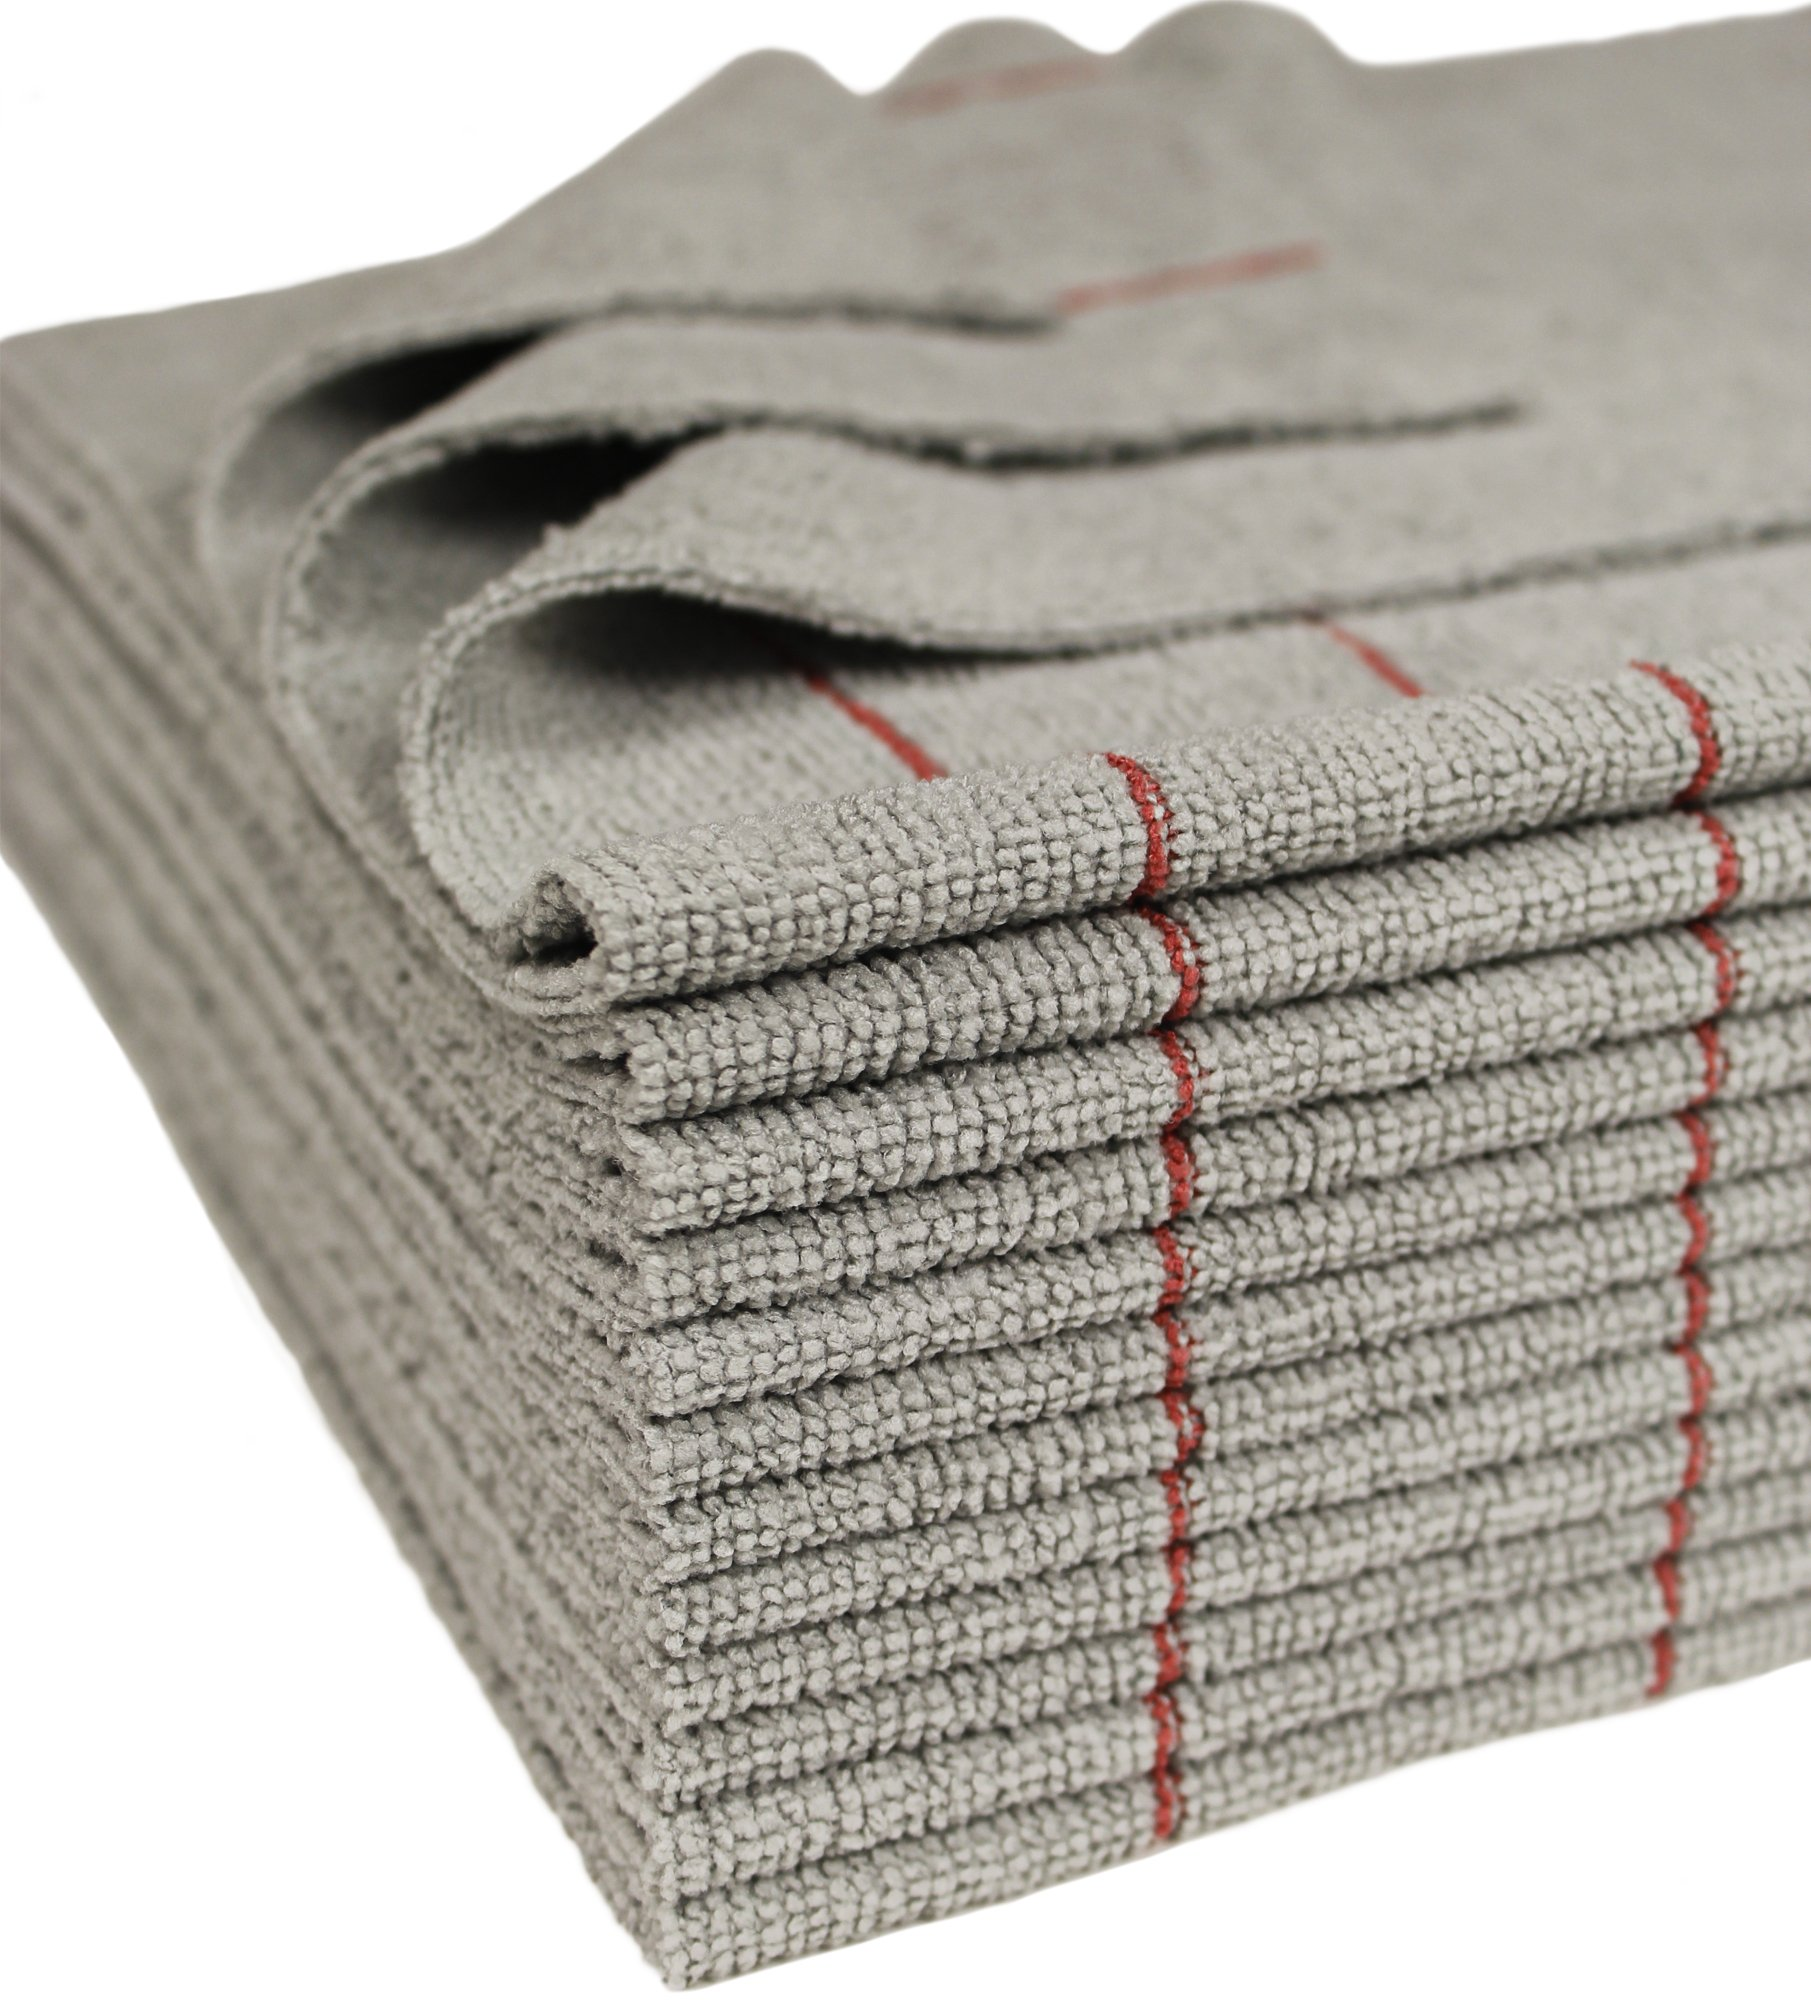 CleanAide Antimicrobial Silver Towels Edgeless Cut Red Stripe 16 X 16 in 12 Pack product image